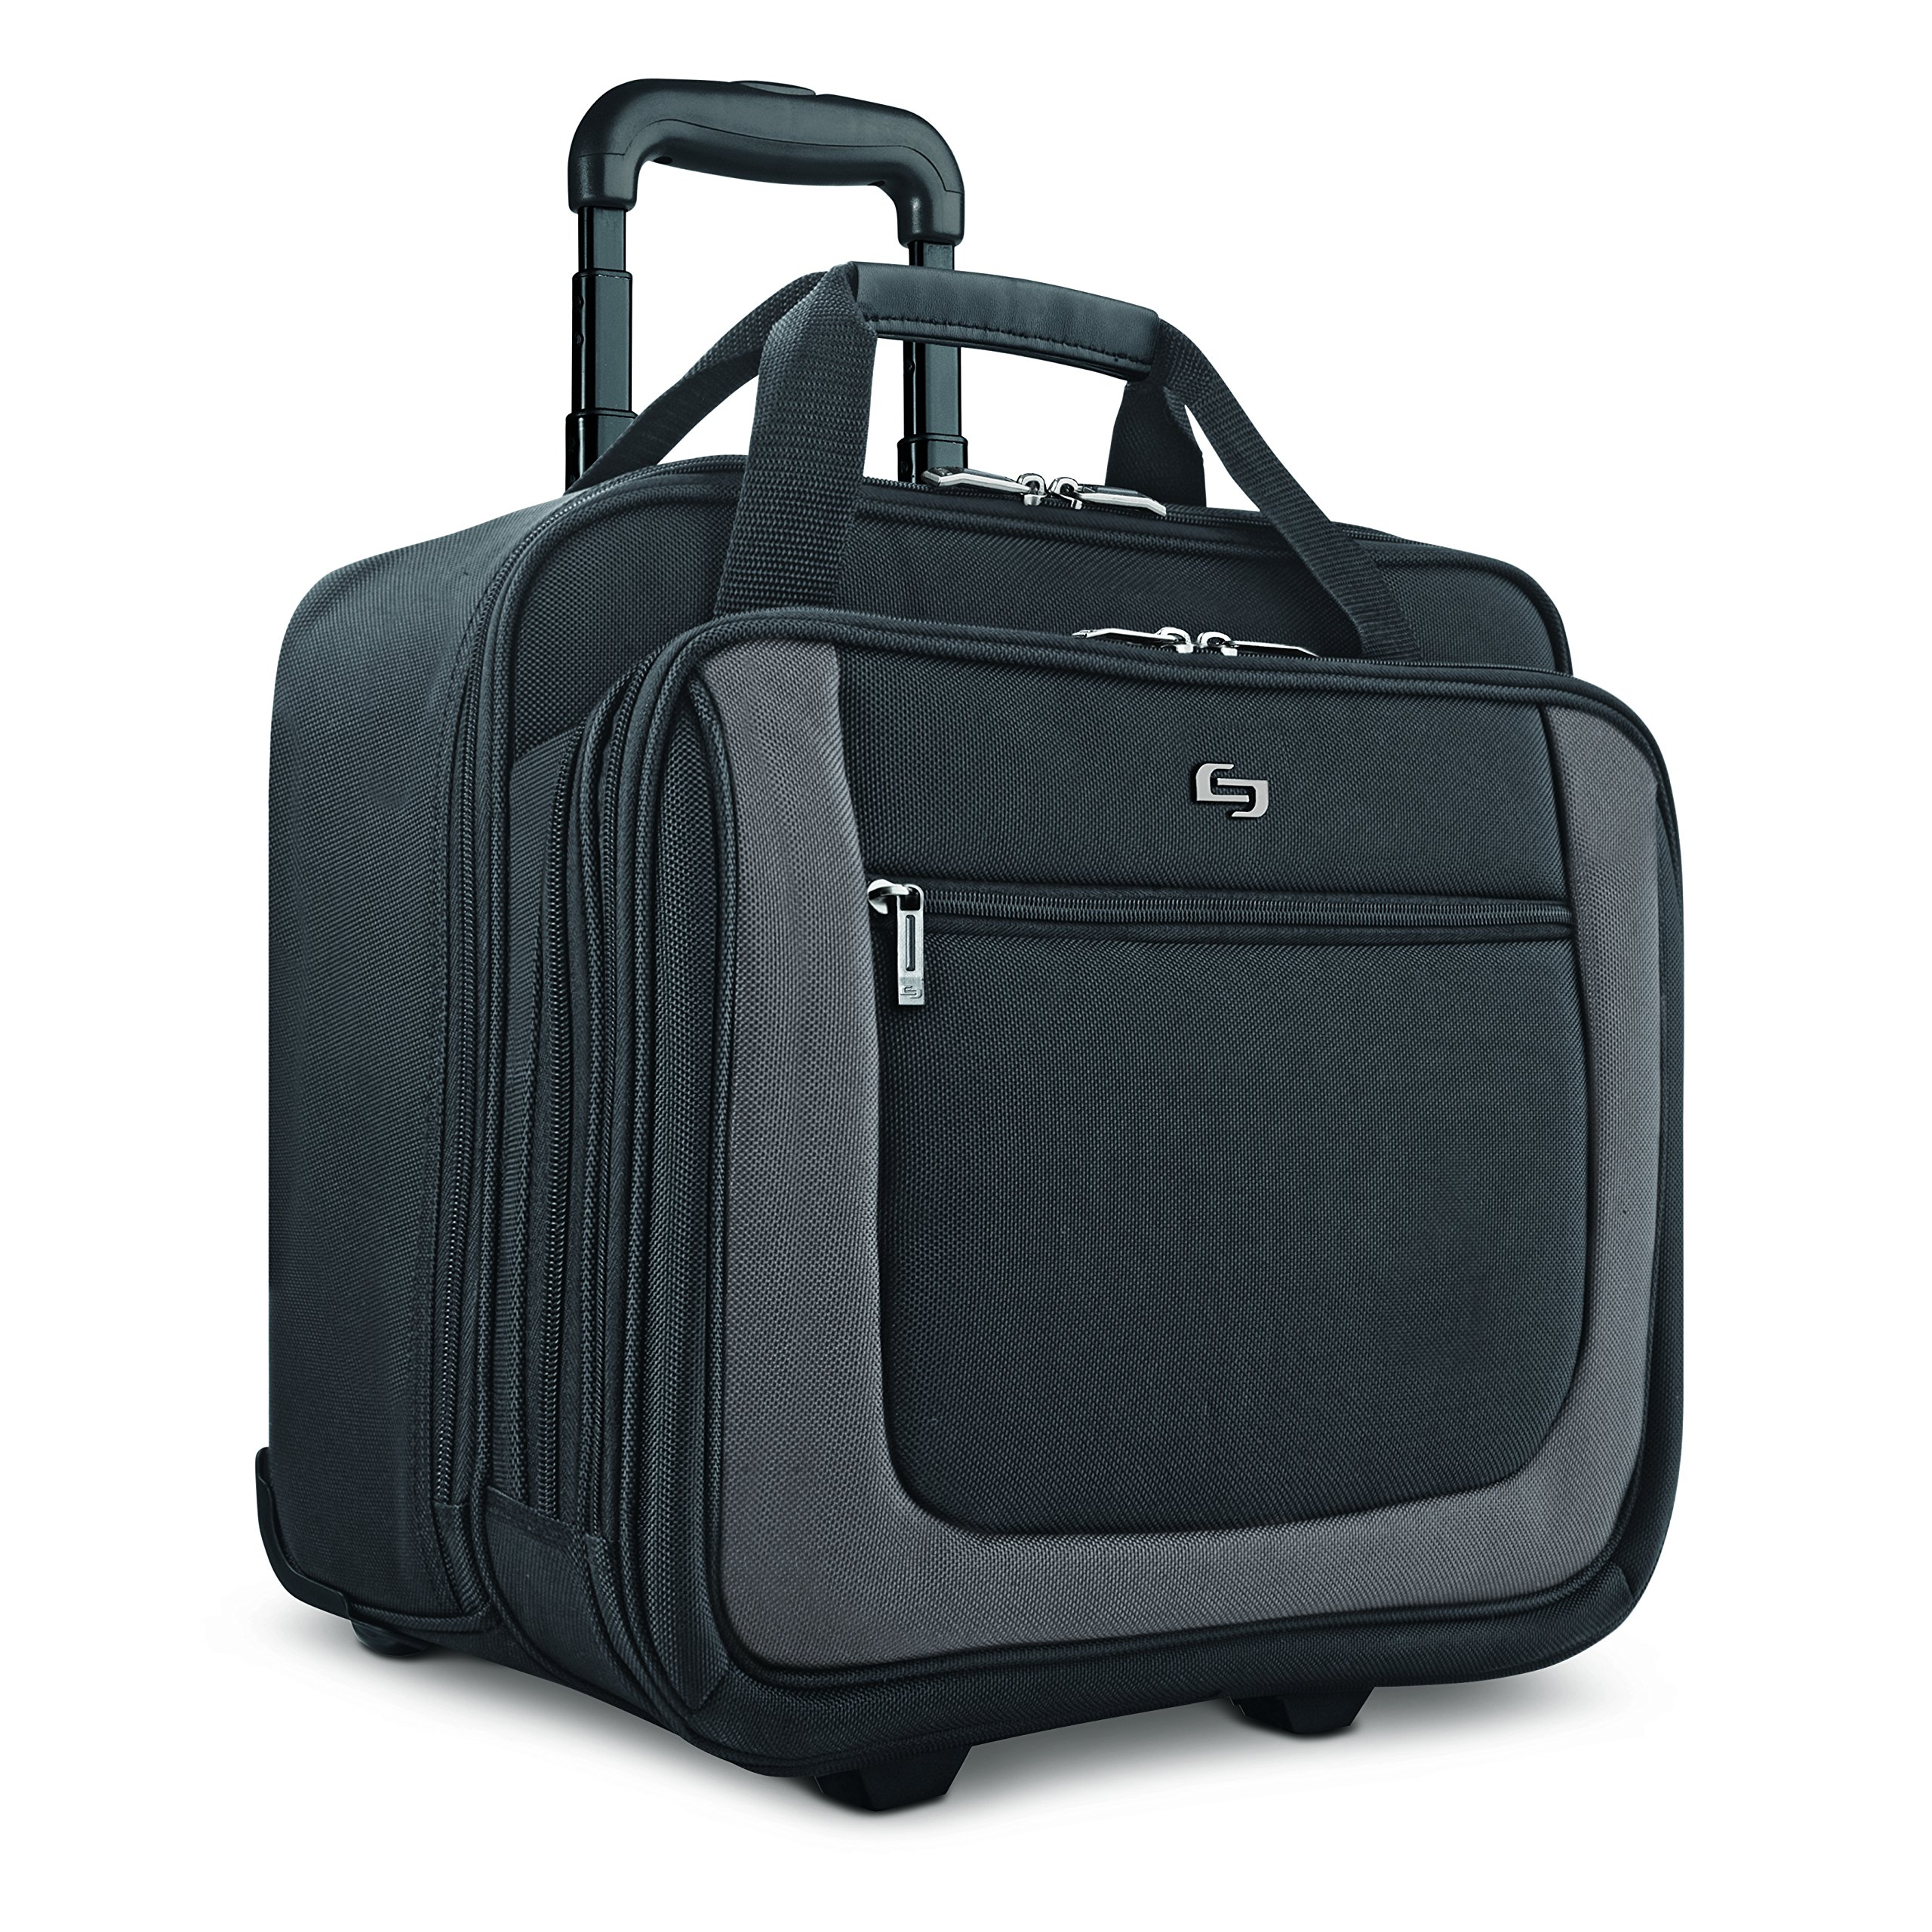 Solo New York Bryant Rolling Laptop Bag. Travel-friendly Rolling Briefcase for Women and Men. Fits up to 17.3 inch laptop. Amazon Exclusive Color Black/Grey by SOLO (Image #1)